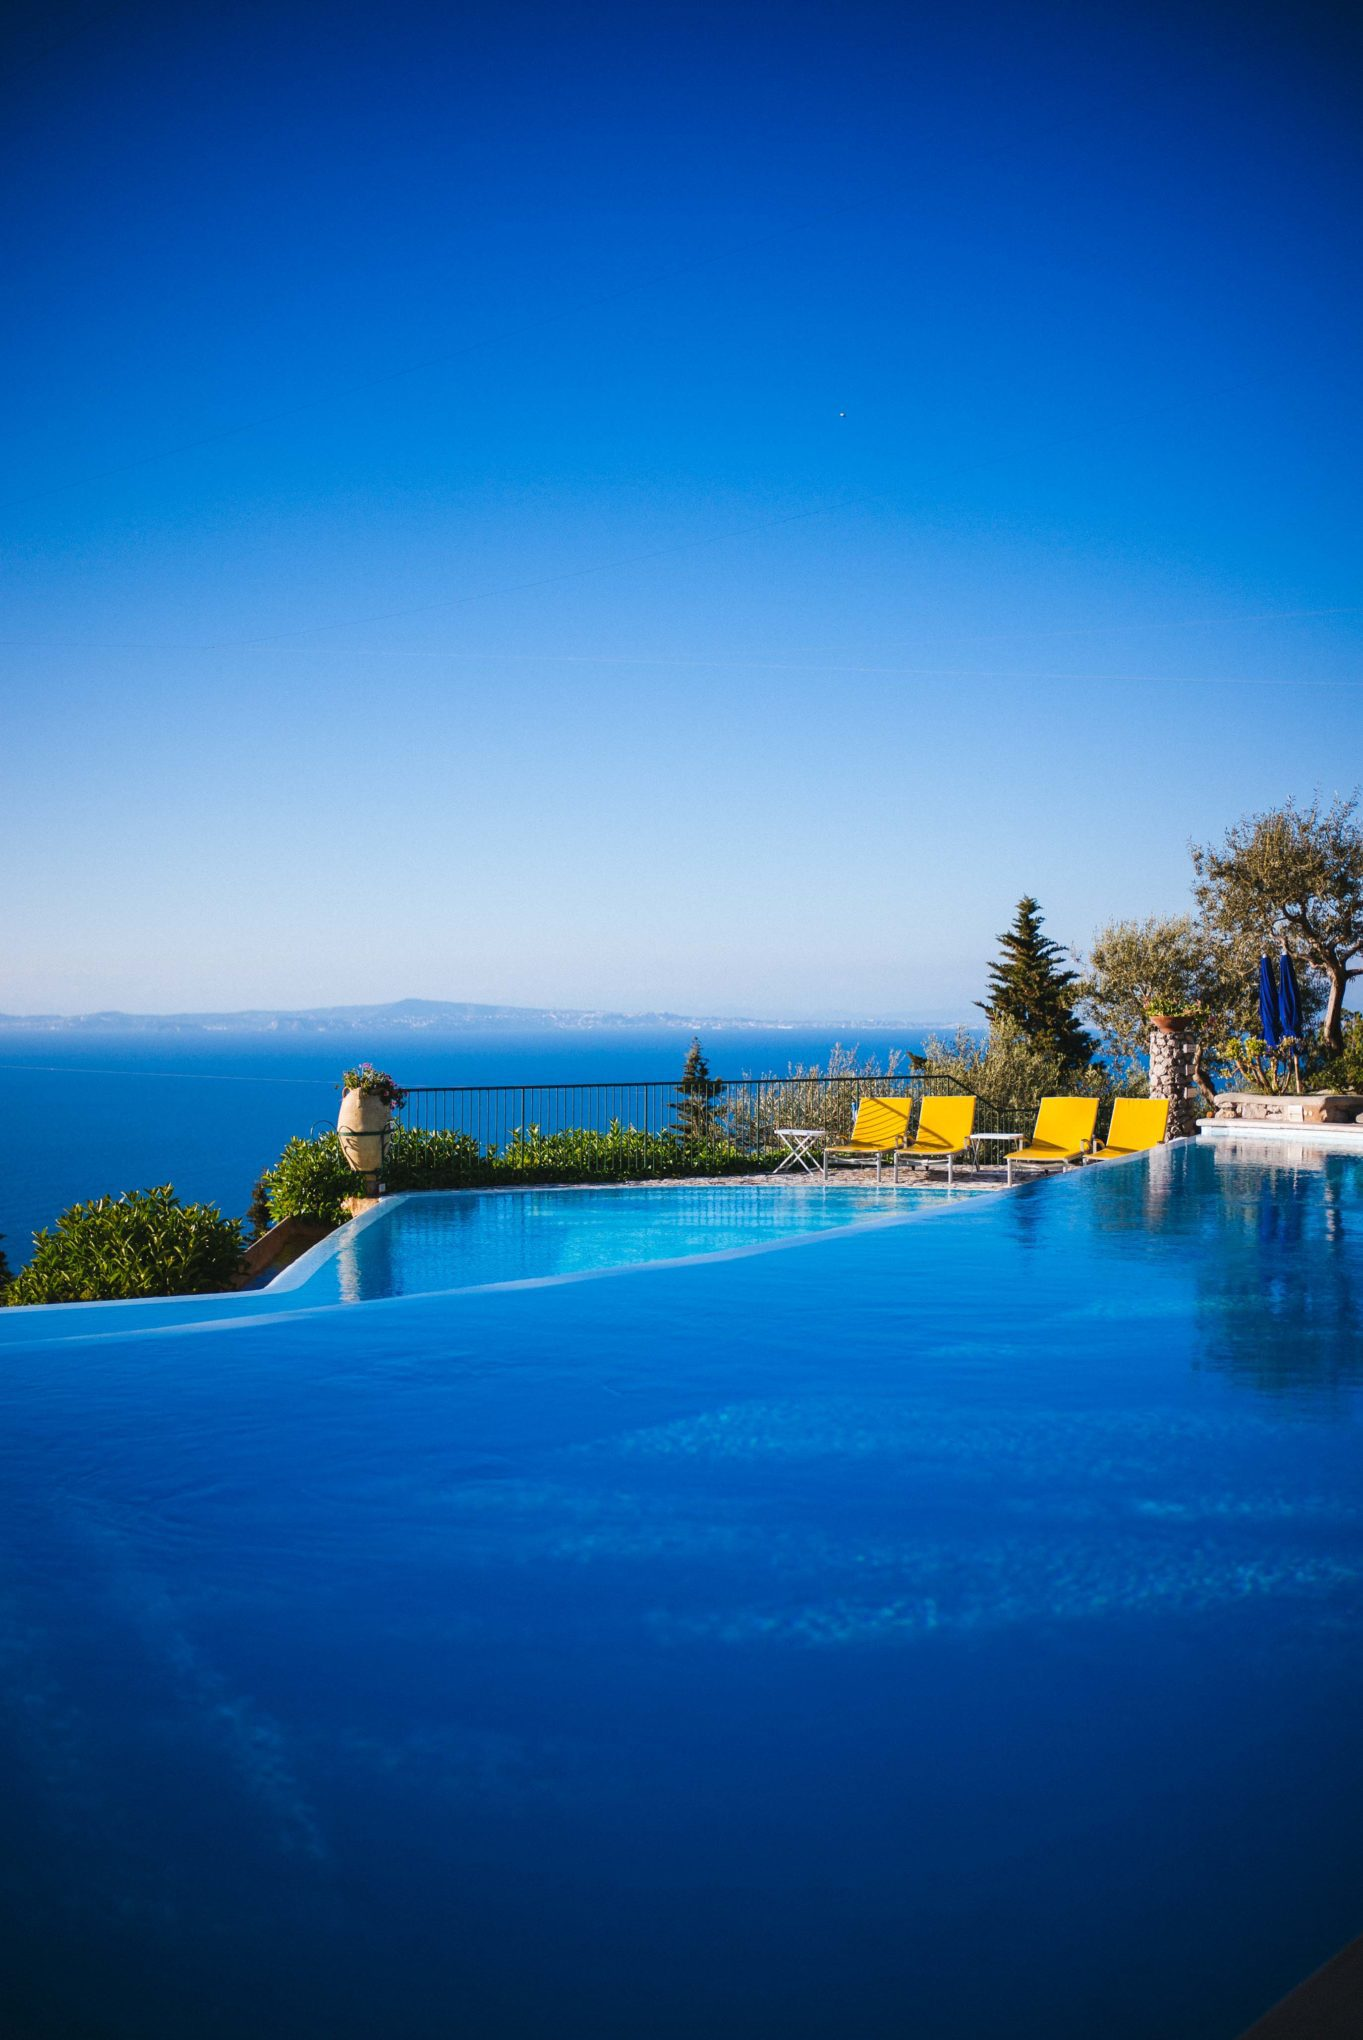 Relax by a double infinity pool at Hotel Caesar Augustus Capri Italy on your Amalfi Coast vacation, The Taste SF